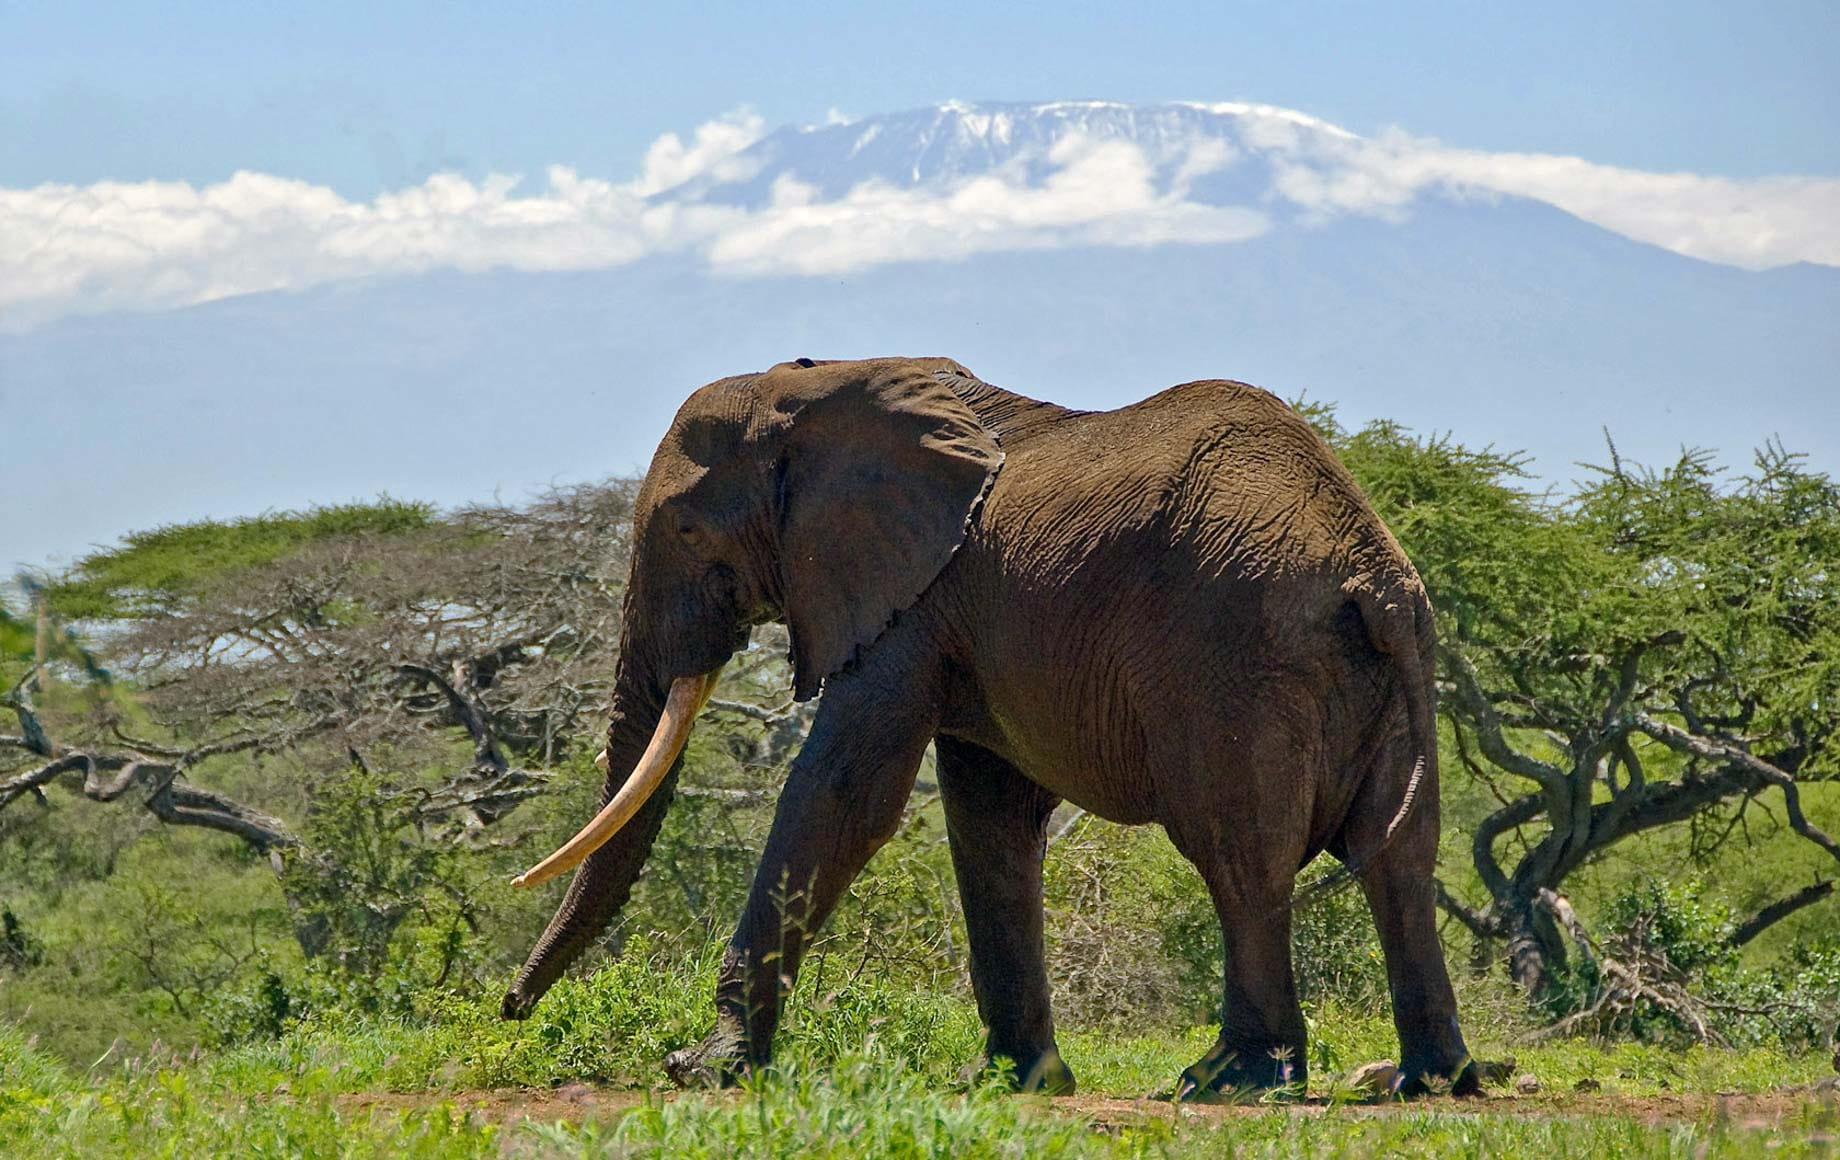 Wild elephant walking alone in peace at Chyulu Hills